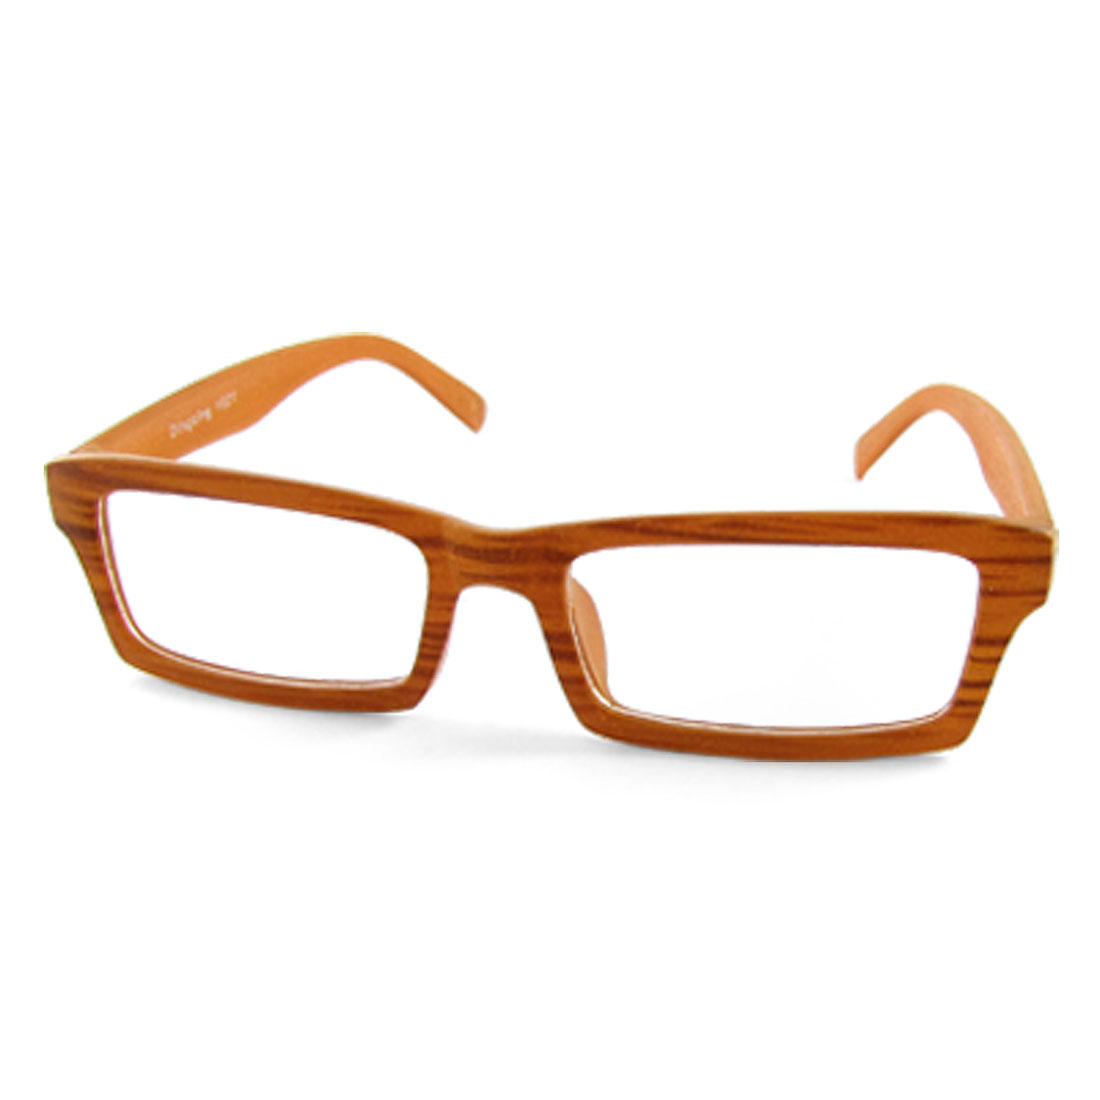 1021 Brown Wood Grain Full Rim Glasses Rectangle Lens Plain Spectacles